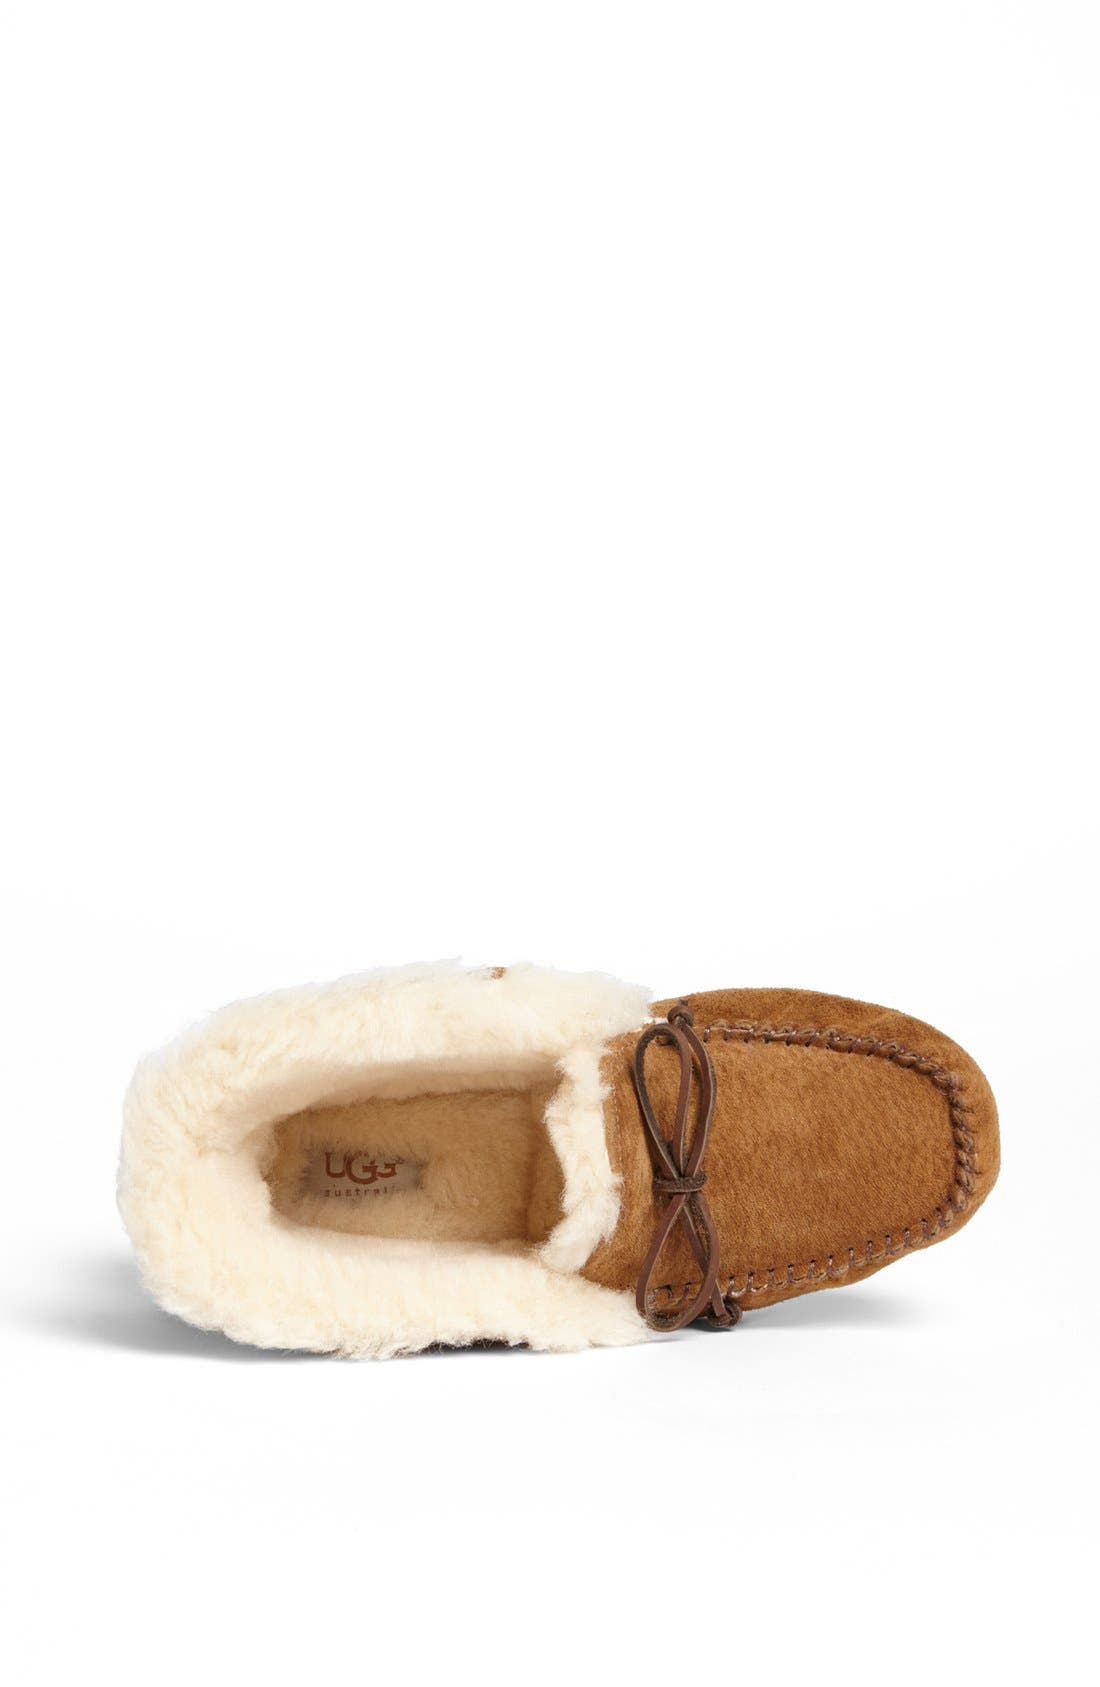 UGGpure<sup>™</sup> Alena Suede Slipper Bootie,                             Alternate thumbnail 3, color,                             CHESTNUT